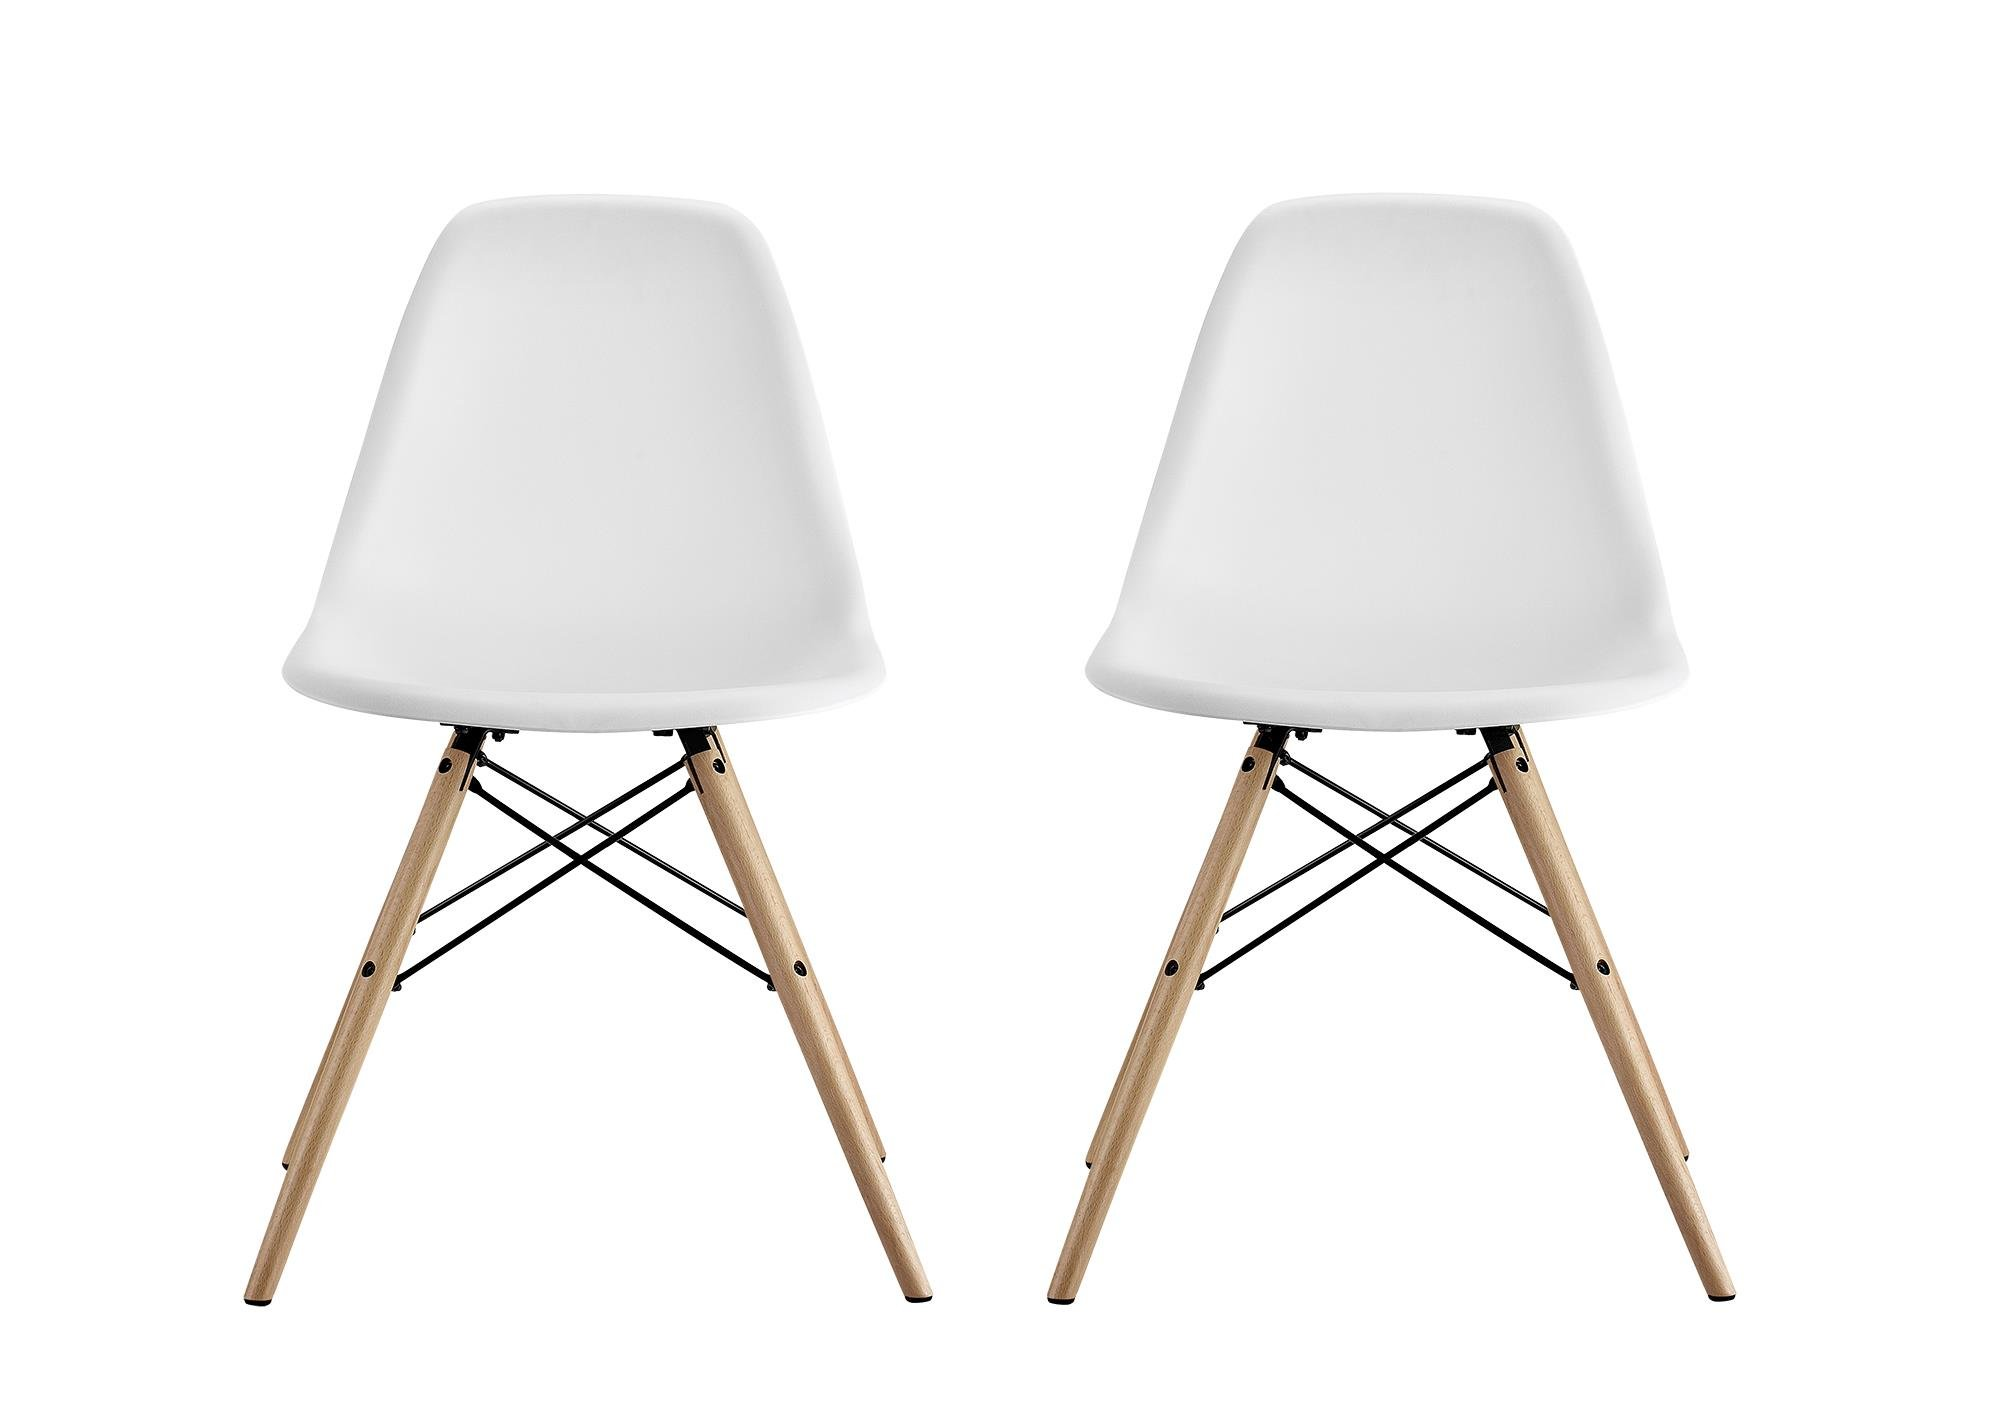 DHP Mid Century Modern Chair with Wood Legs, Set of Two, Lightweight, White